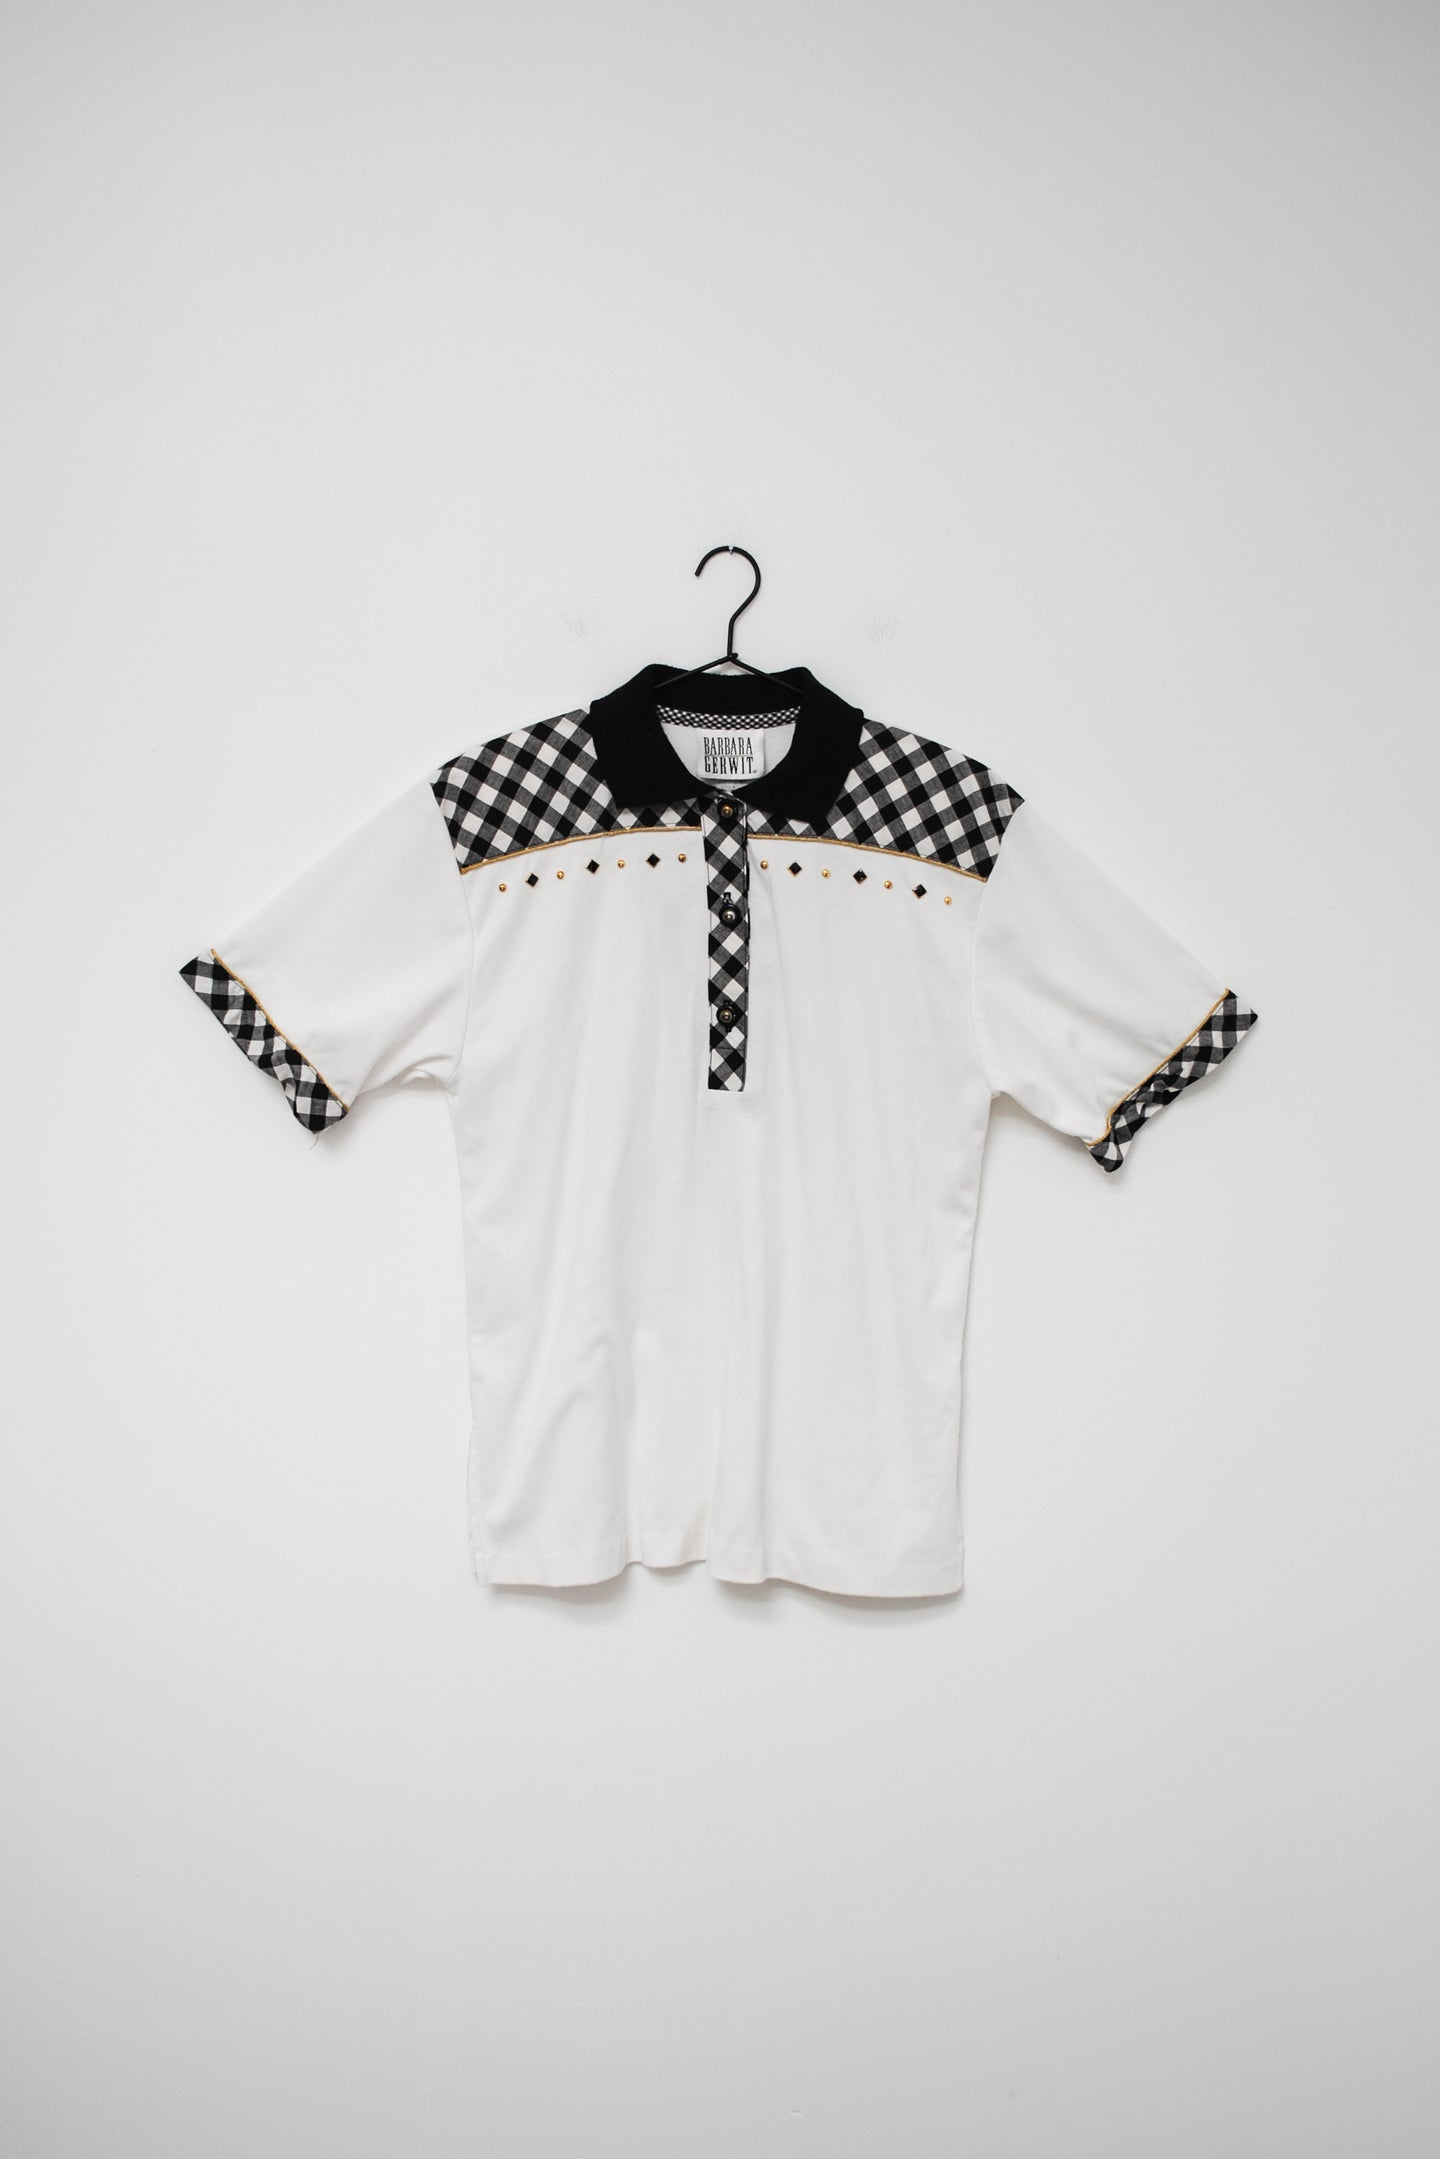 Vintage 80s White Gingham Embellished Polo Top / S-M